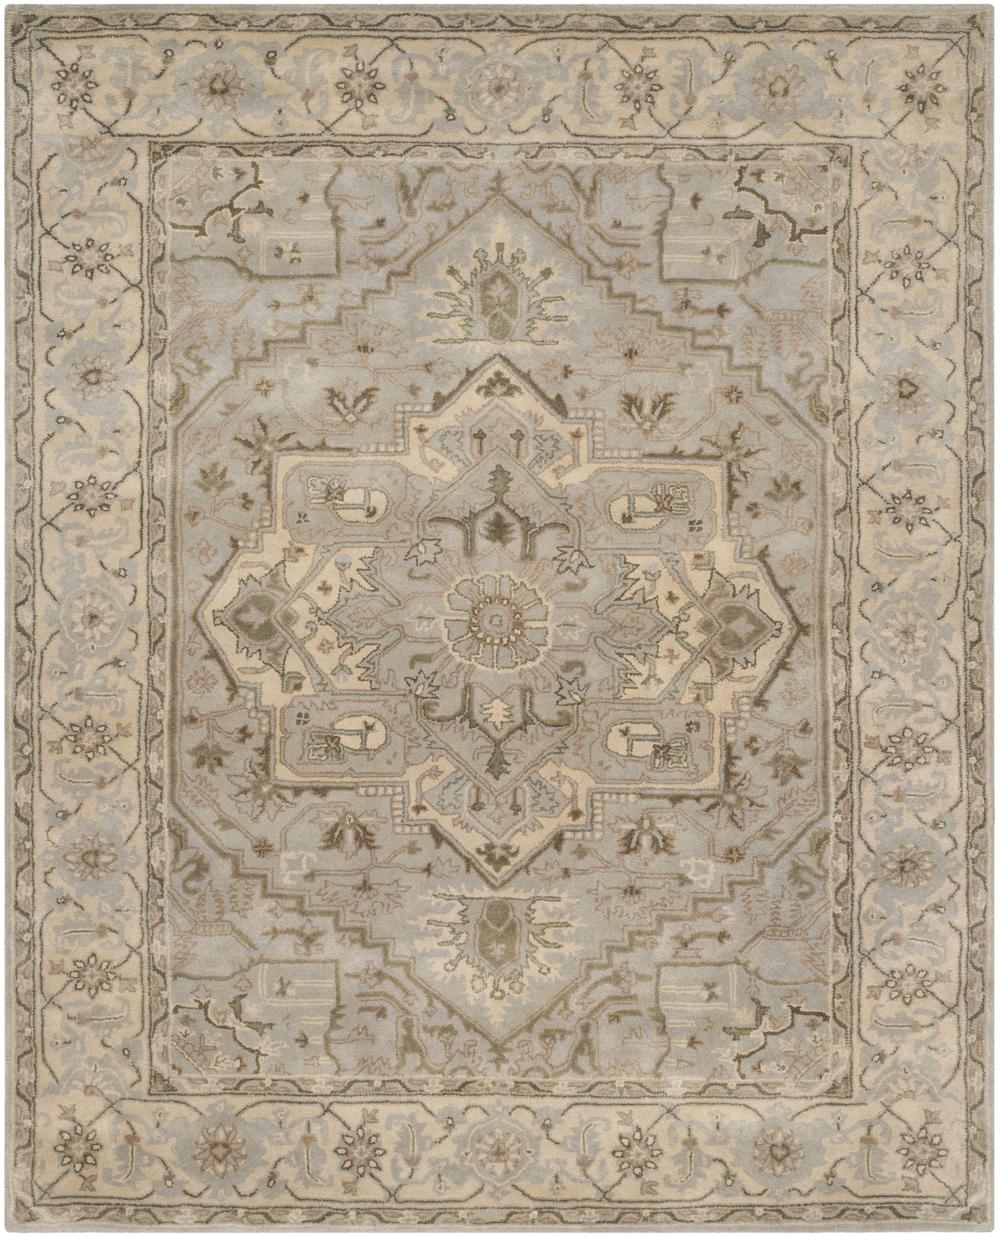 Safavieh Heritage Hg866a Beige And Grey Area Rug Free